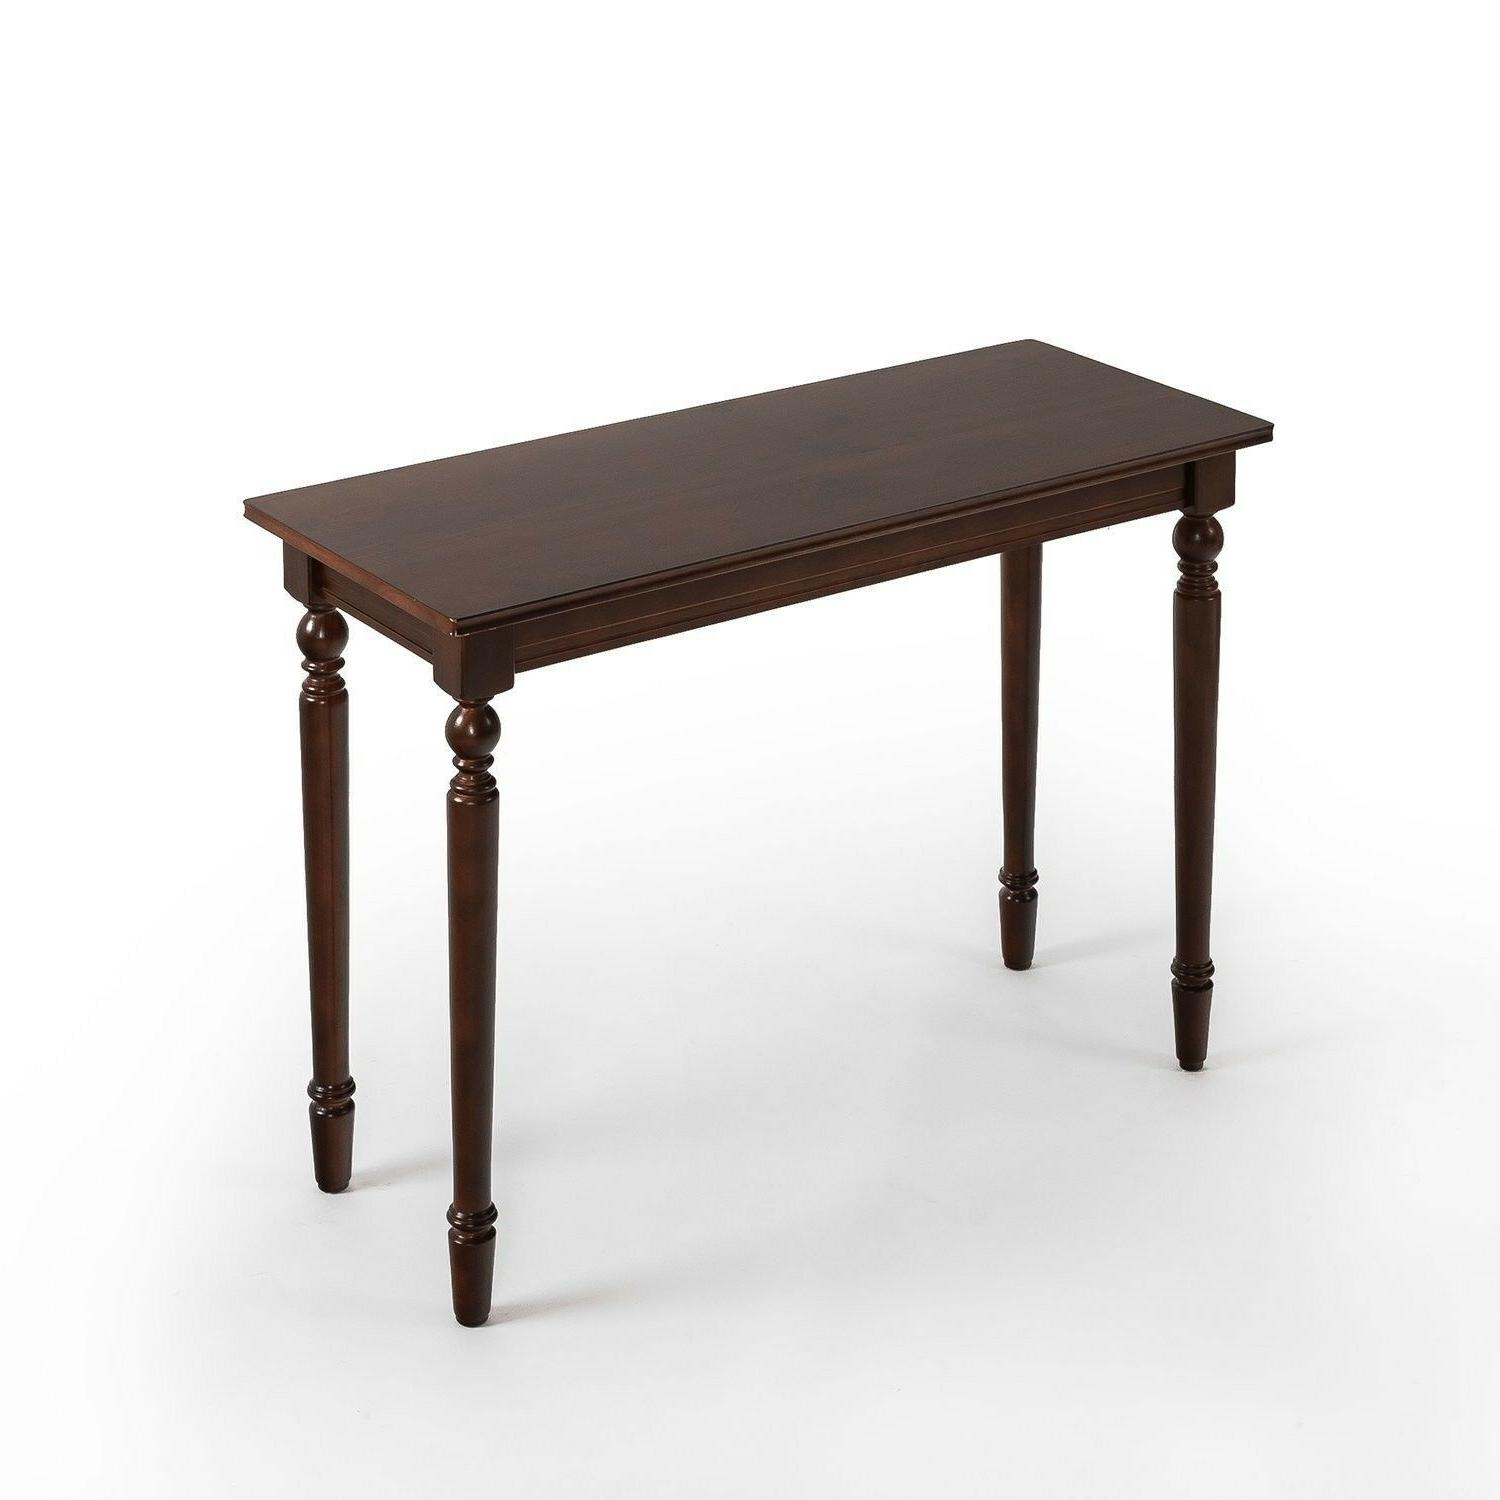 Bordeaux Wood Console Table / Entryway Table,Perfect Decoration for Your